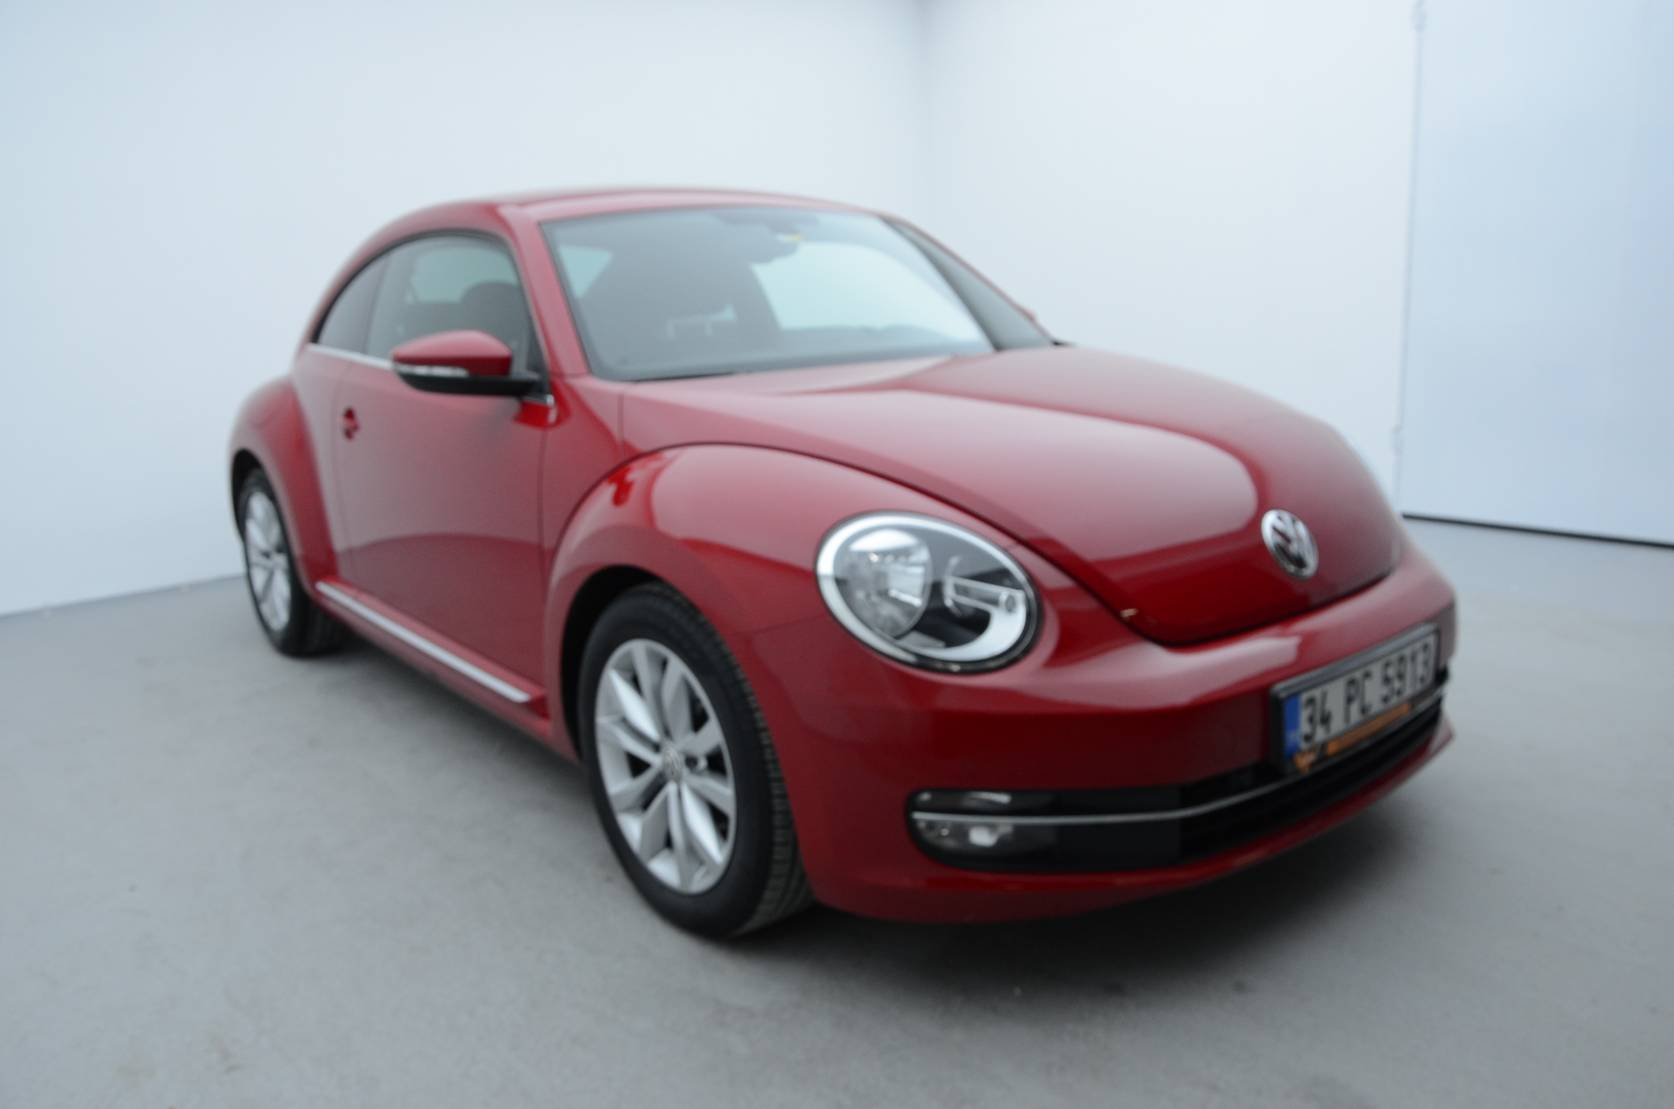 Volkswagen Beetle The 1.2 TSI DSG Blue Motion Technologie, Design detail2